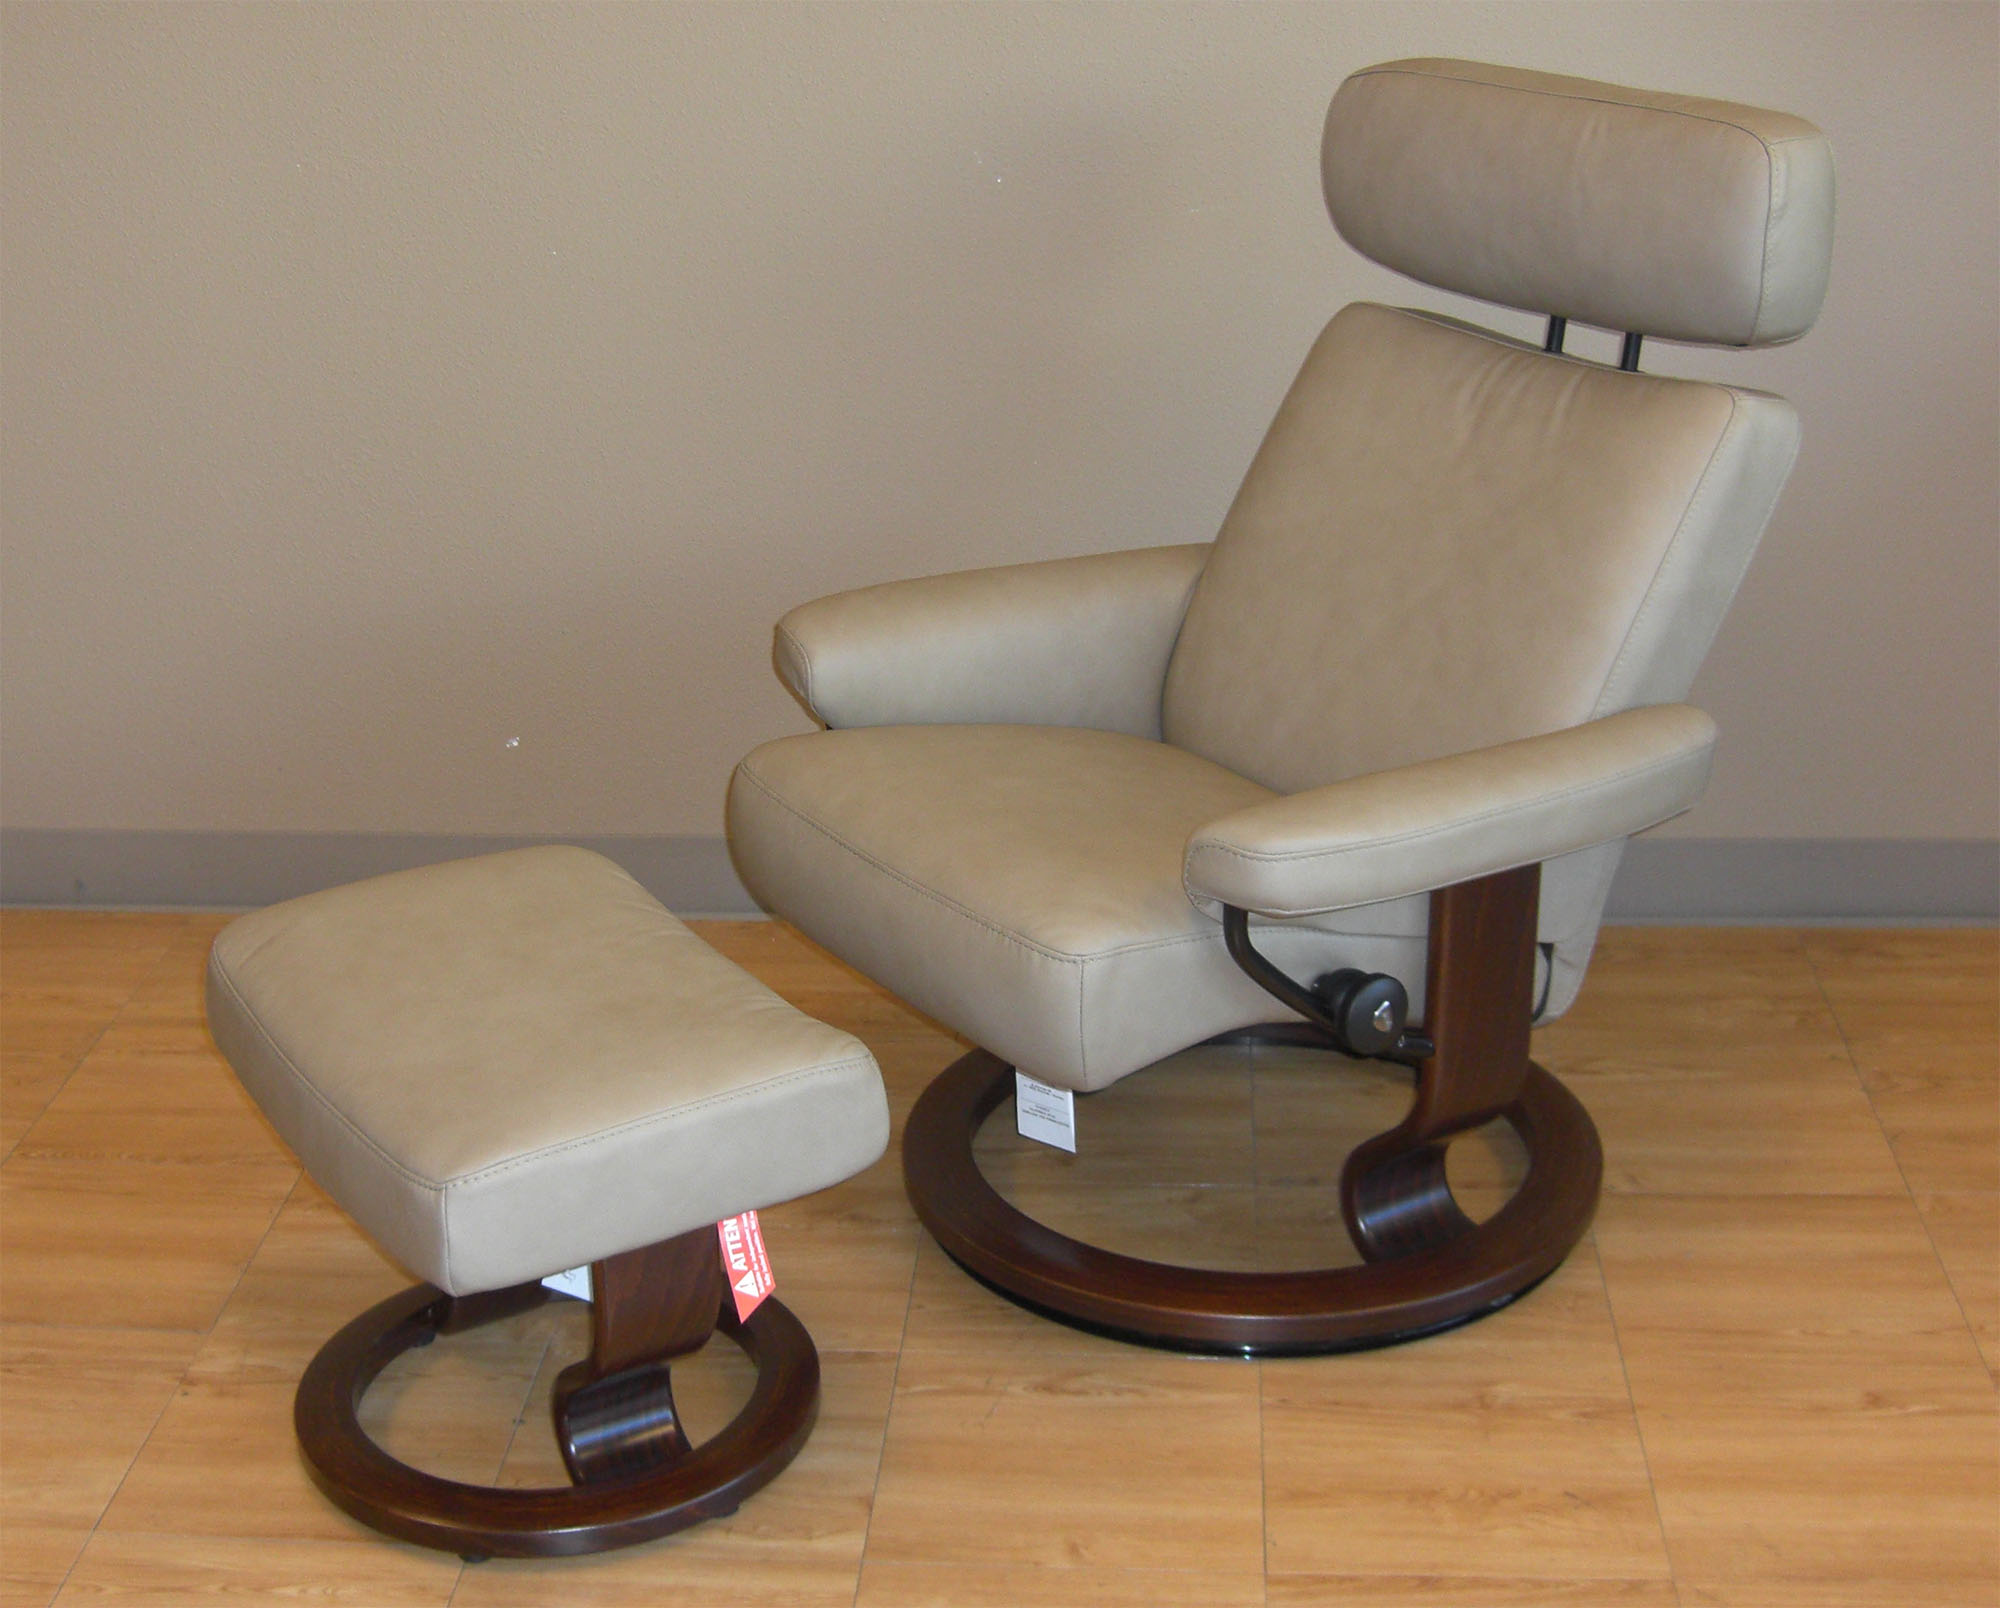 Wonderful Stressless Paloma Stone Leather Color Recliner Chair And Ottoman From  Ekornes